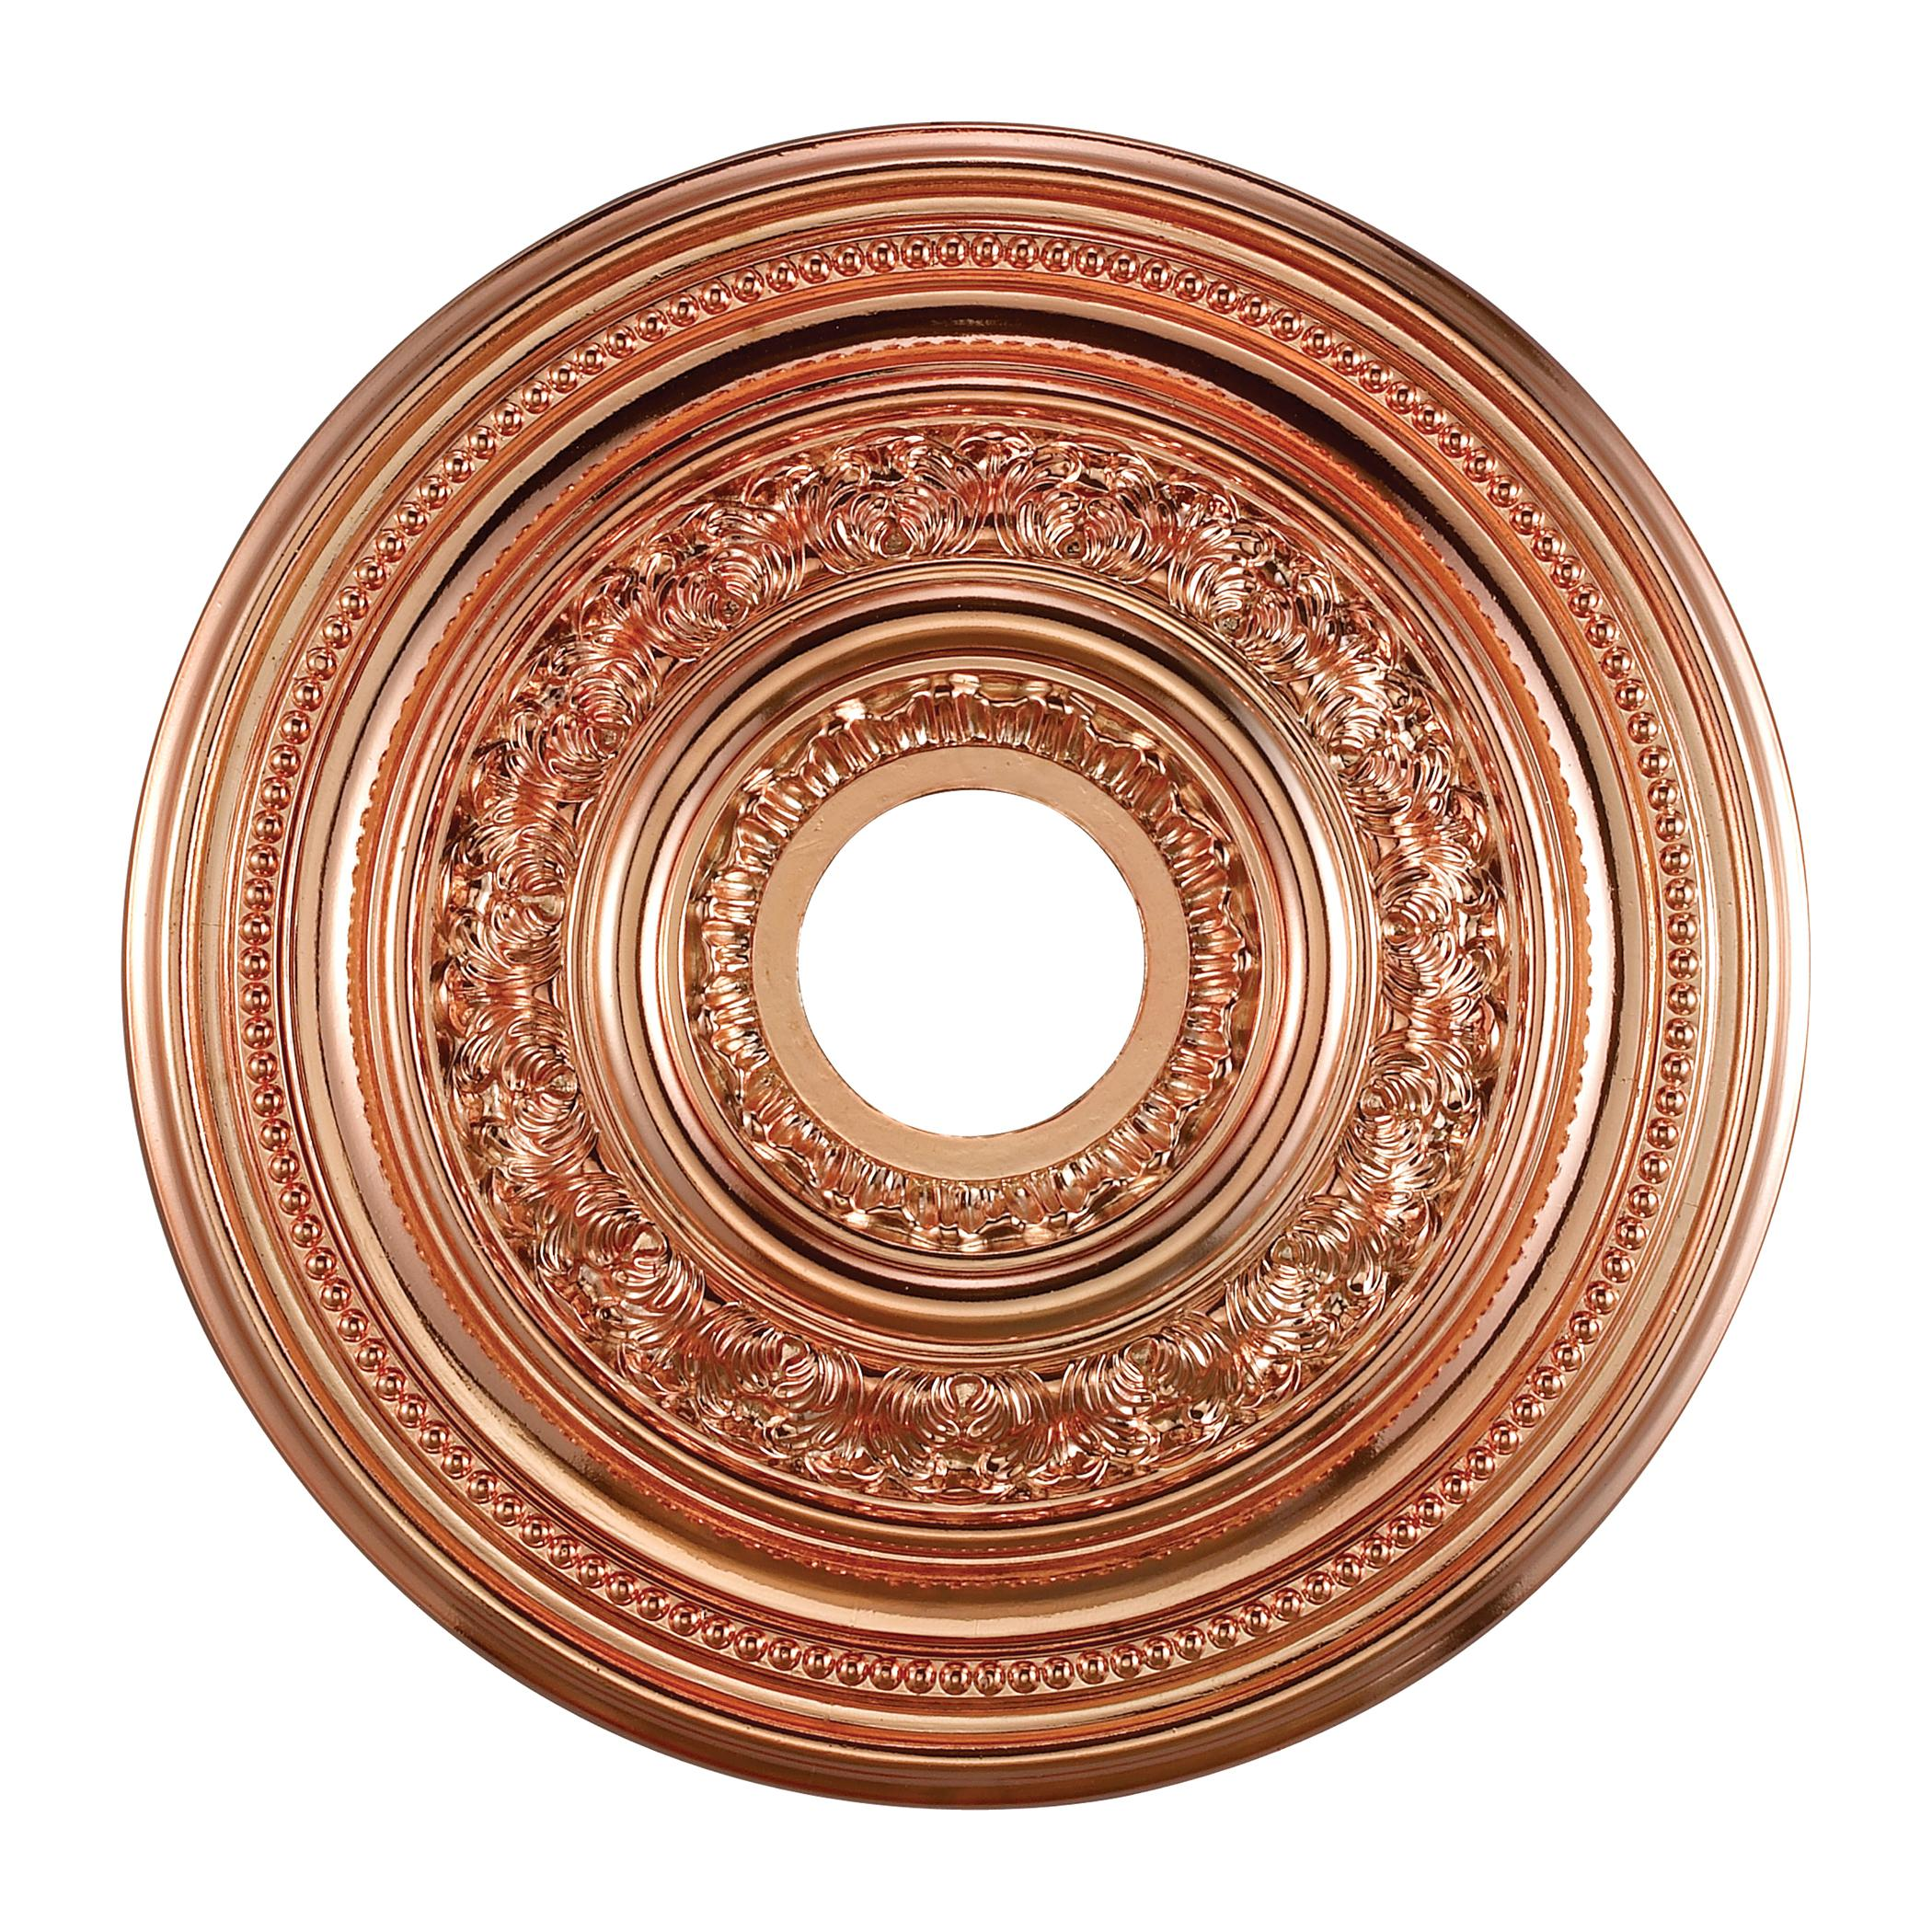 Elk Lighting Bordeaux: Copper Finish 18-inch Decorative Medallion